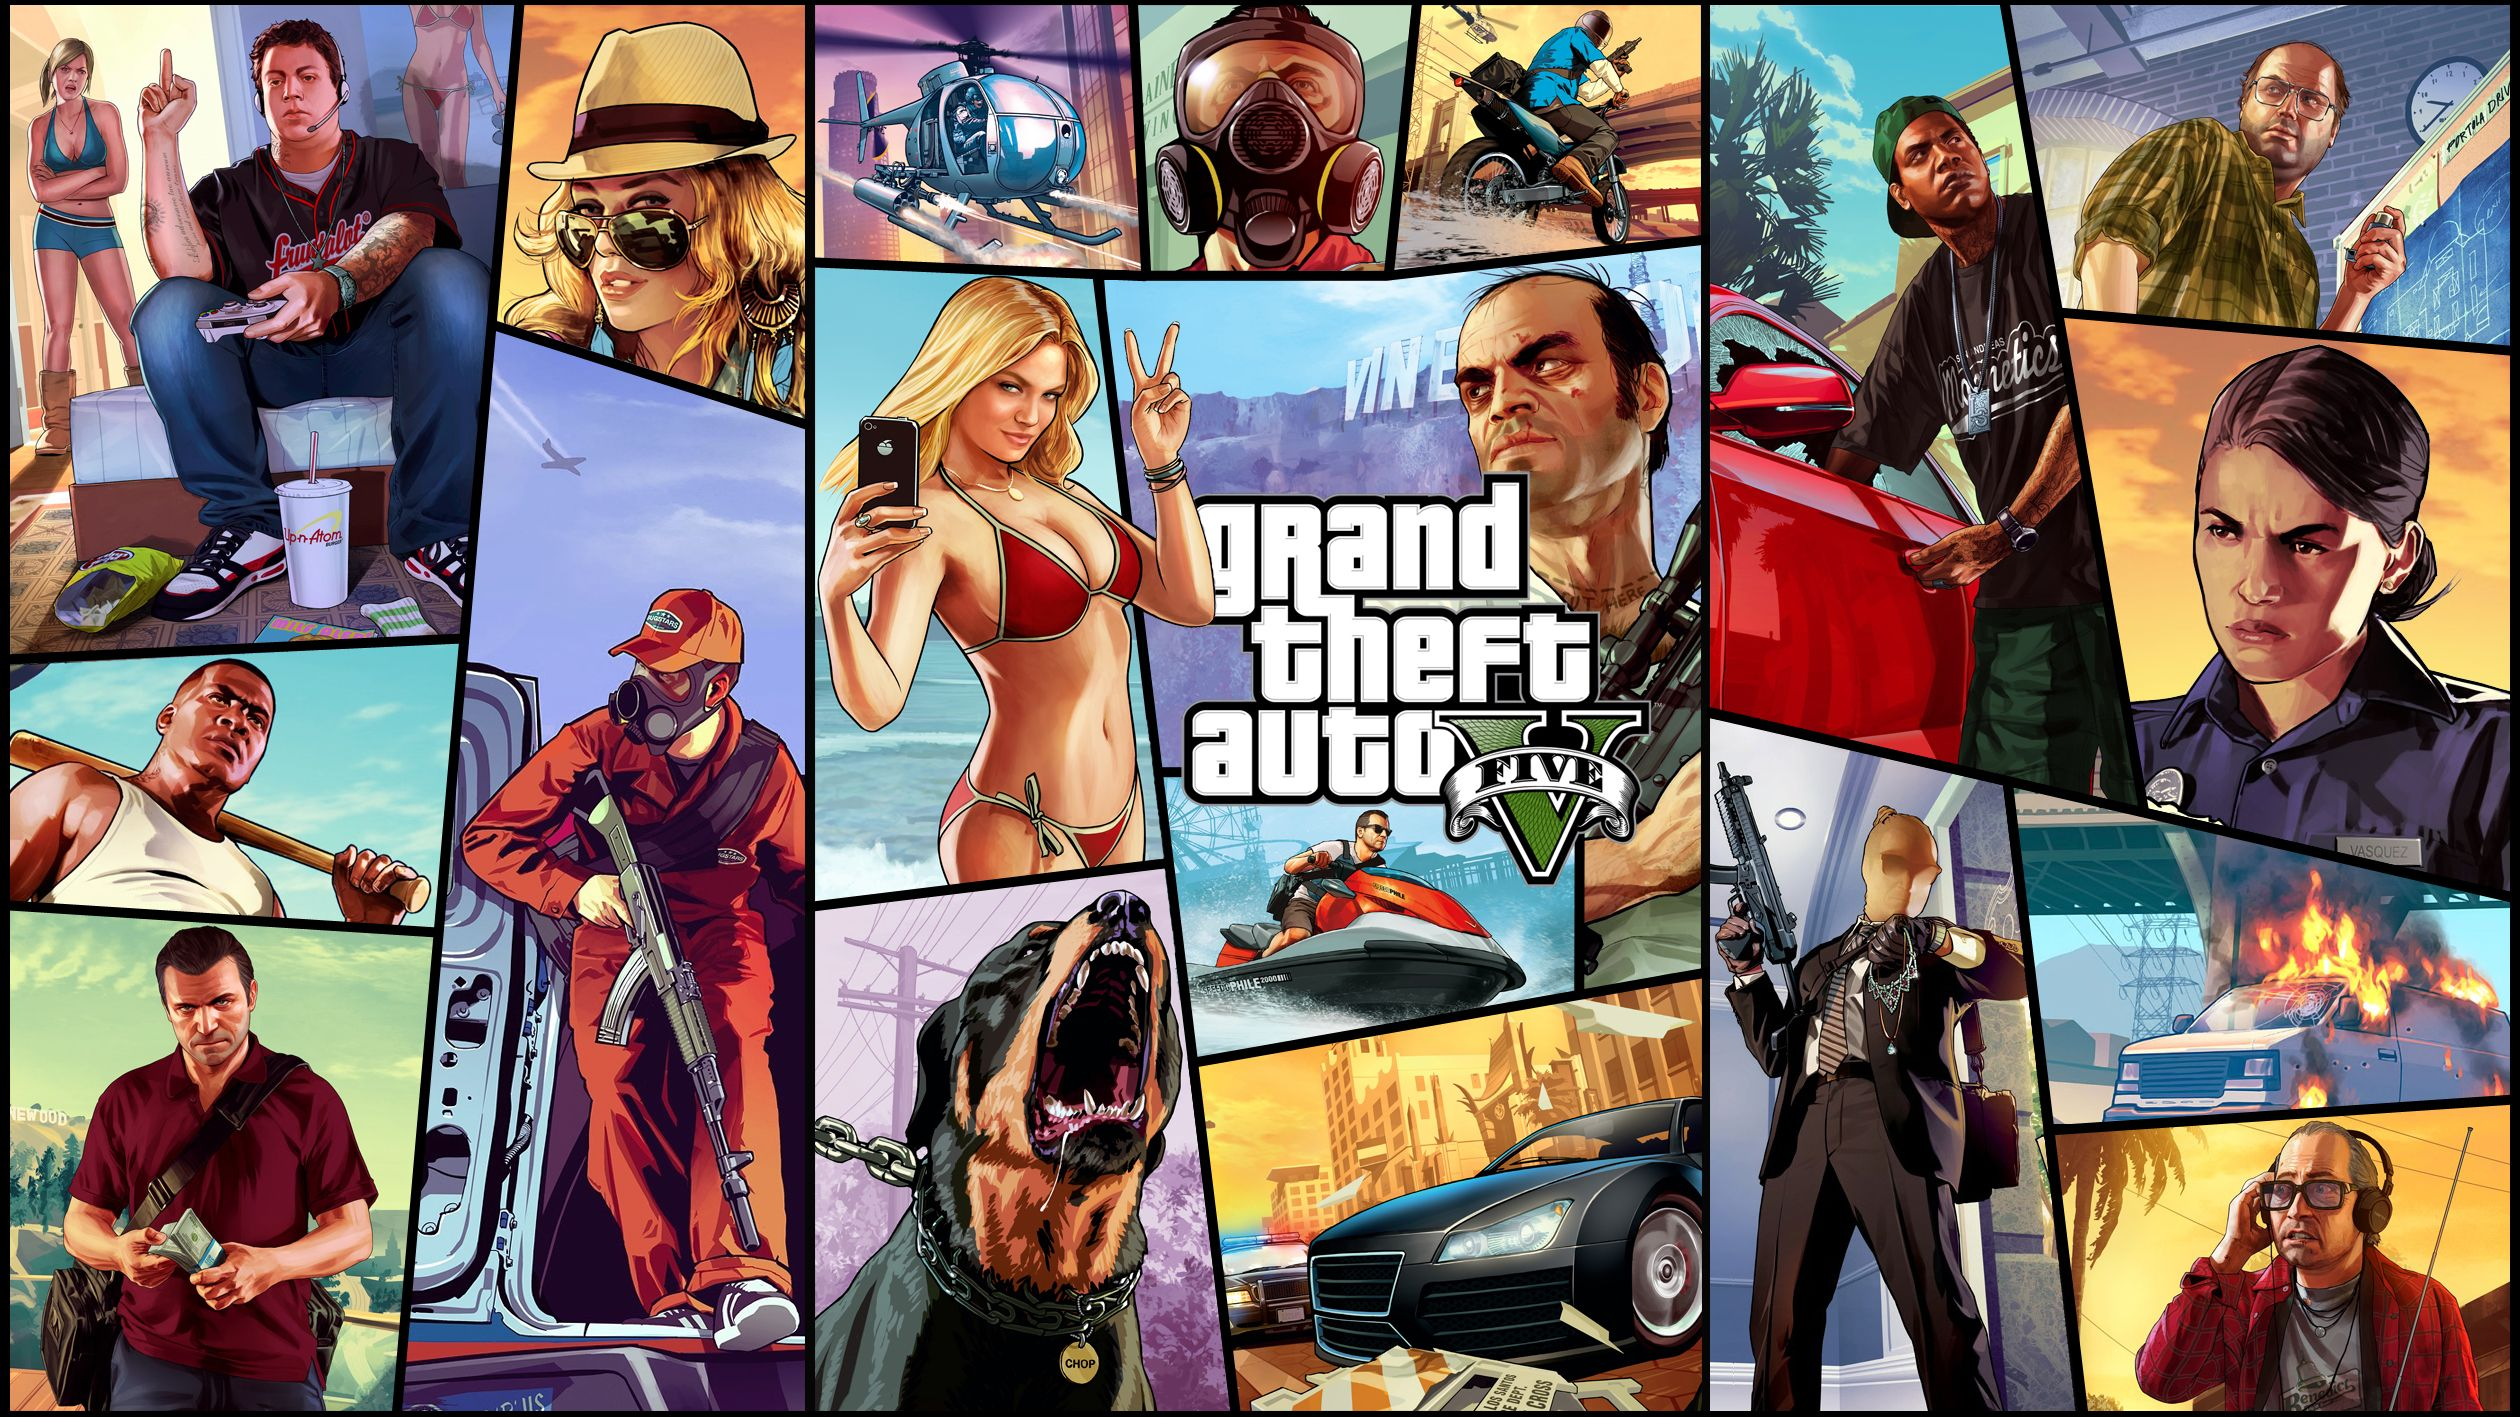 Download image gta5 pc android iphone and ipad wallpapers and - Gta V Chop And Franklin Gta V Pinterest Wallpapers Game And Adorable Wallpapers Pinterest Wallpaper